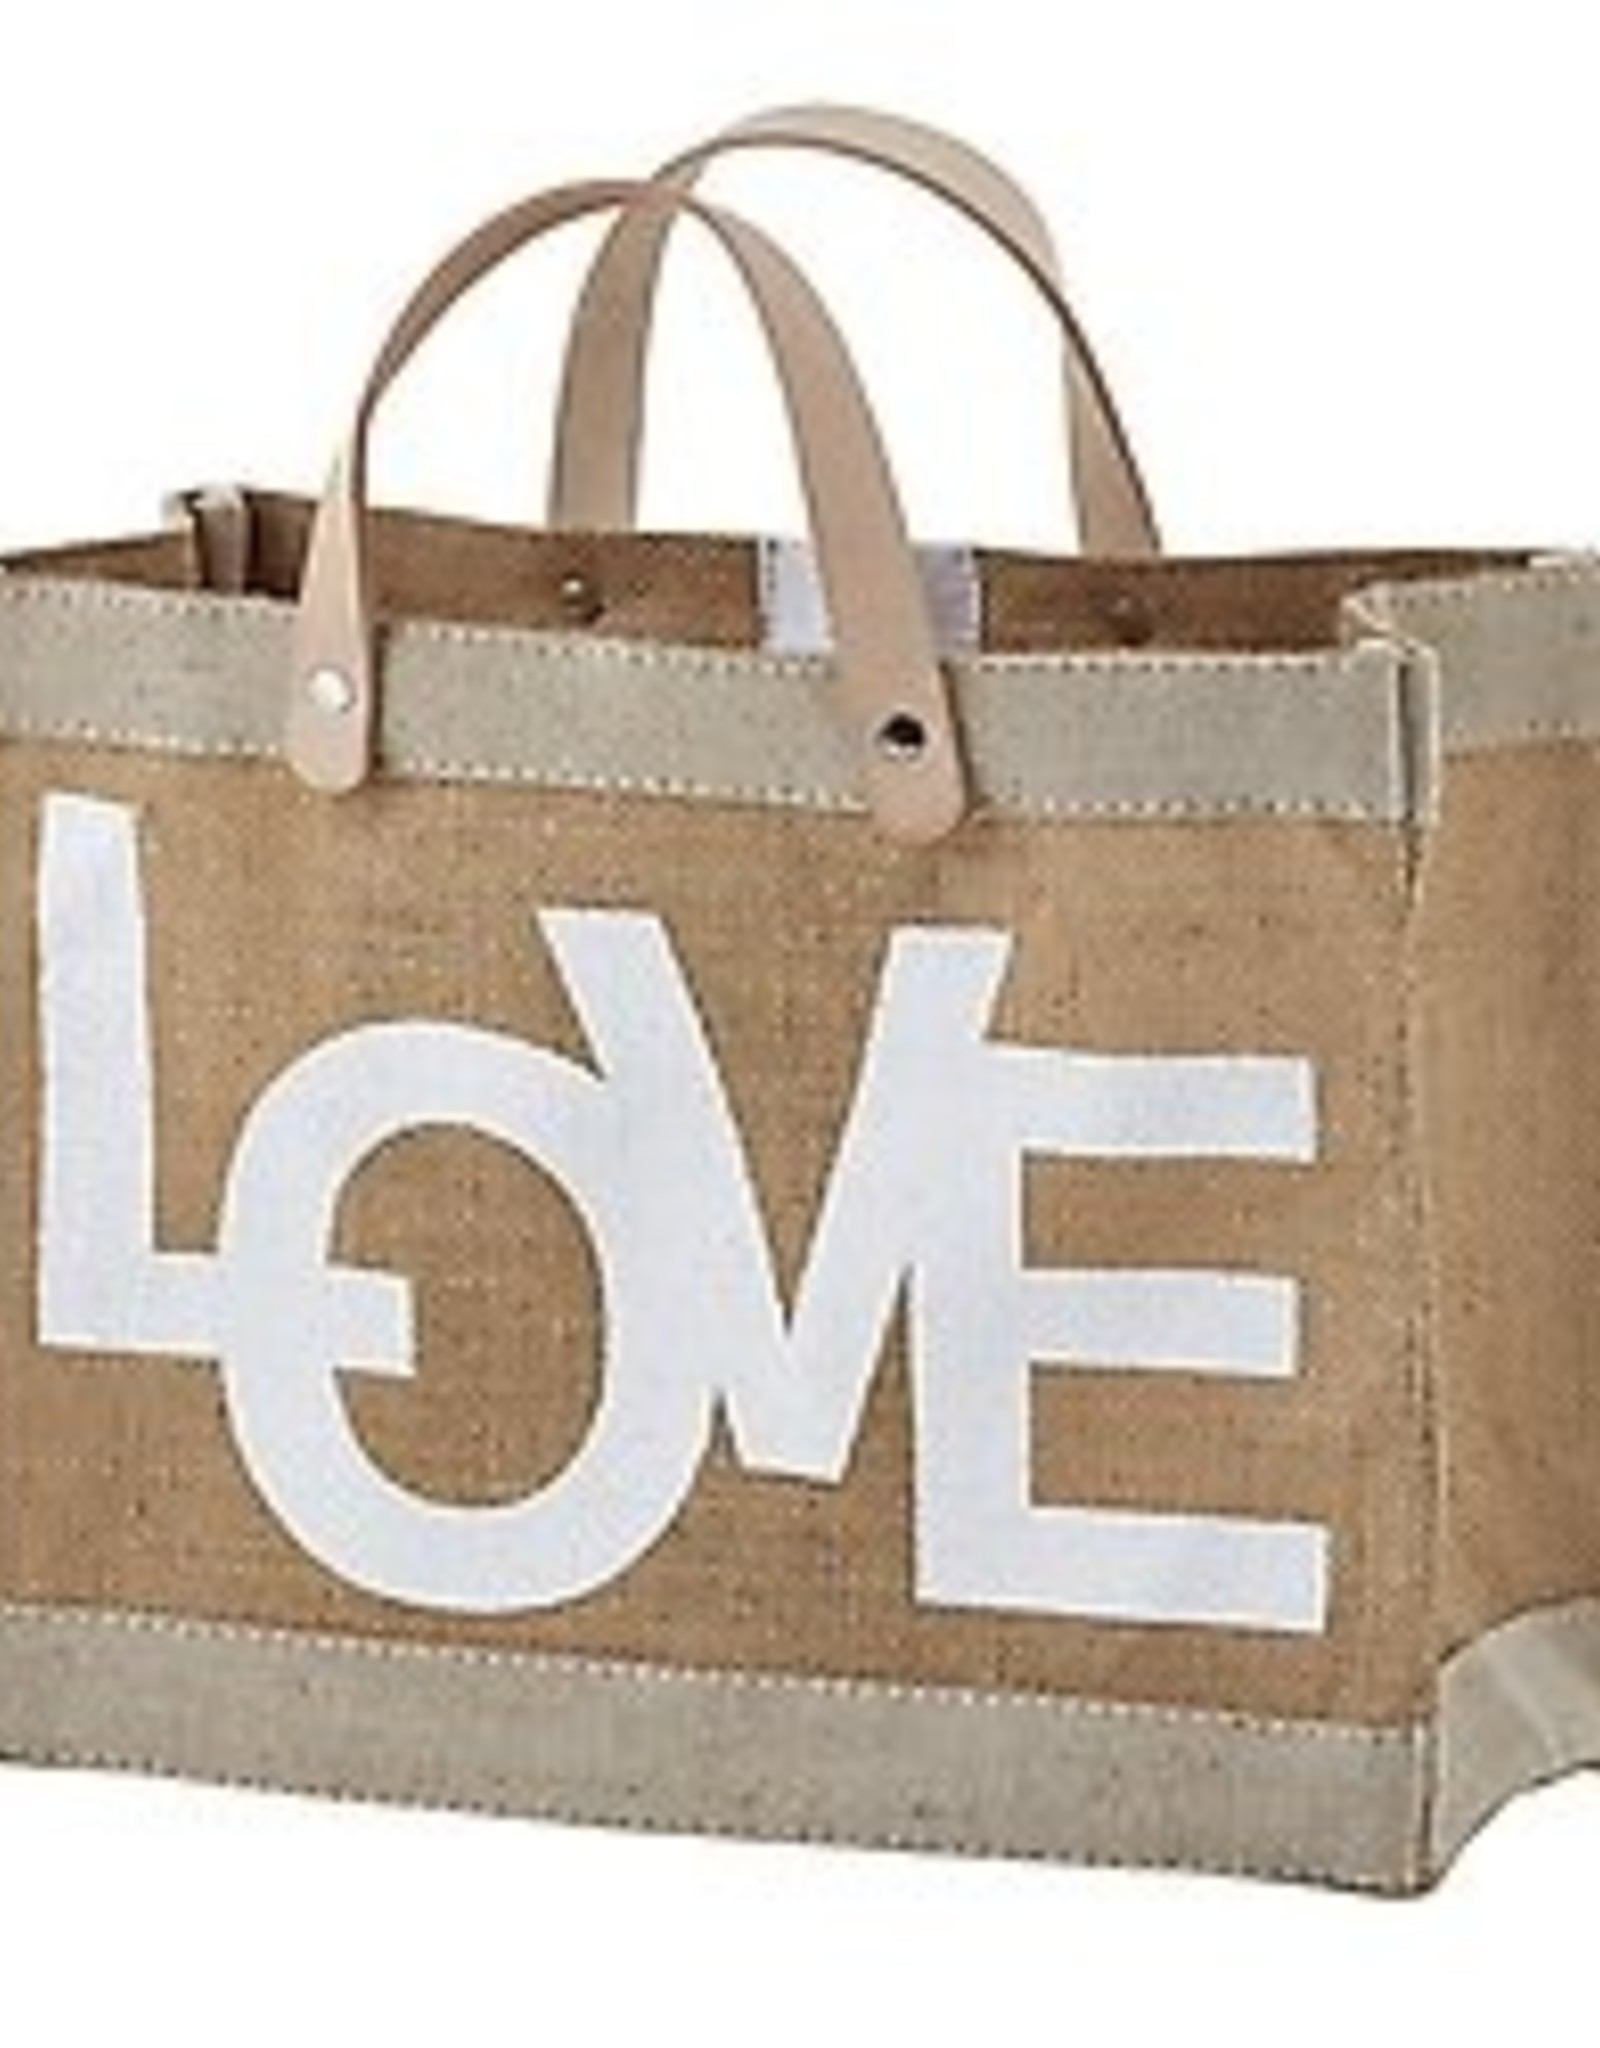 Creative Brands LOVE Mini Market Tote